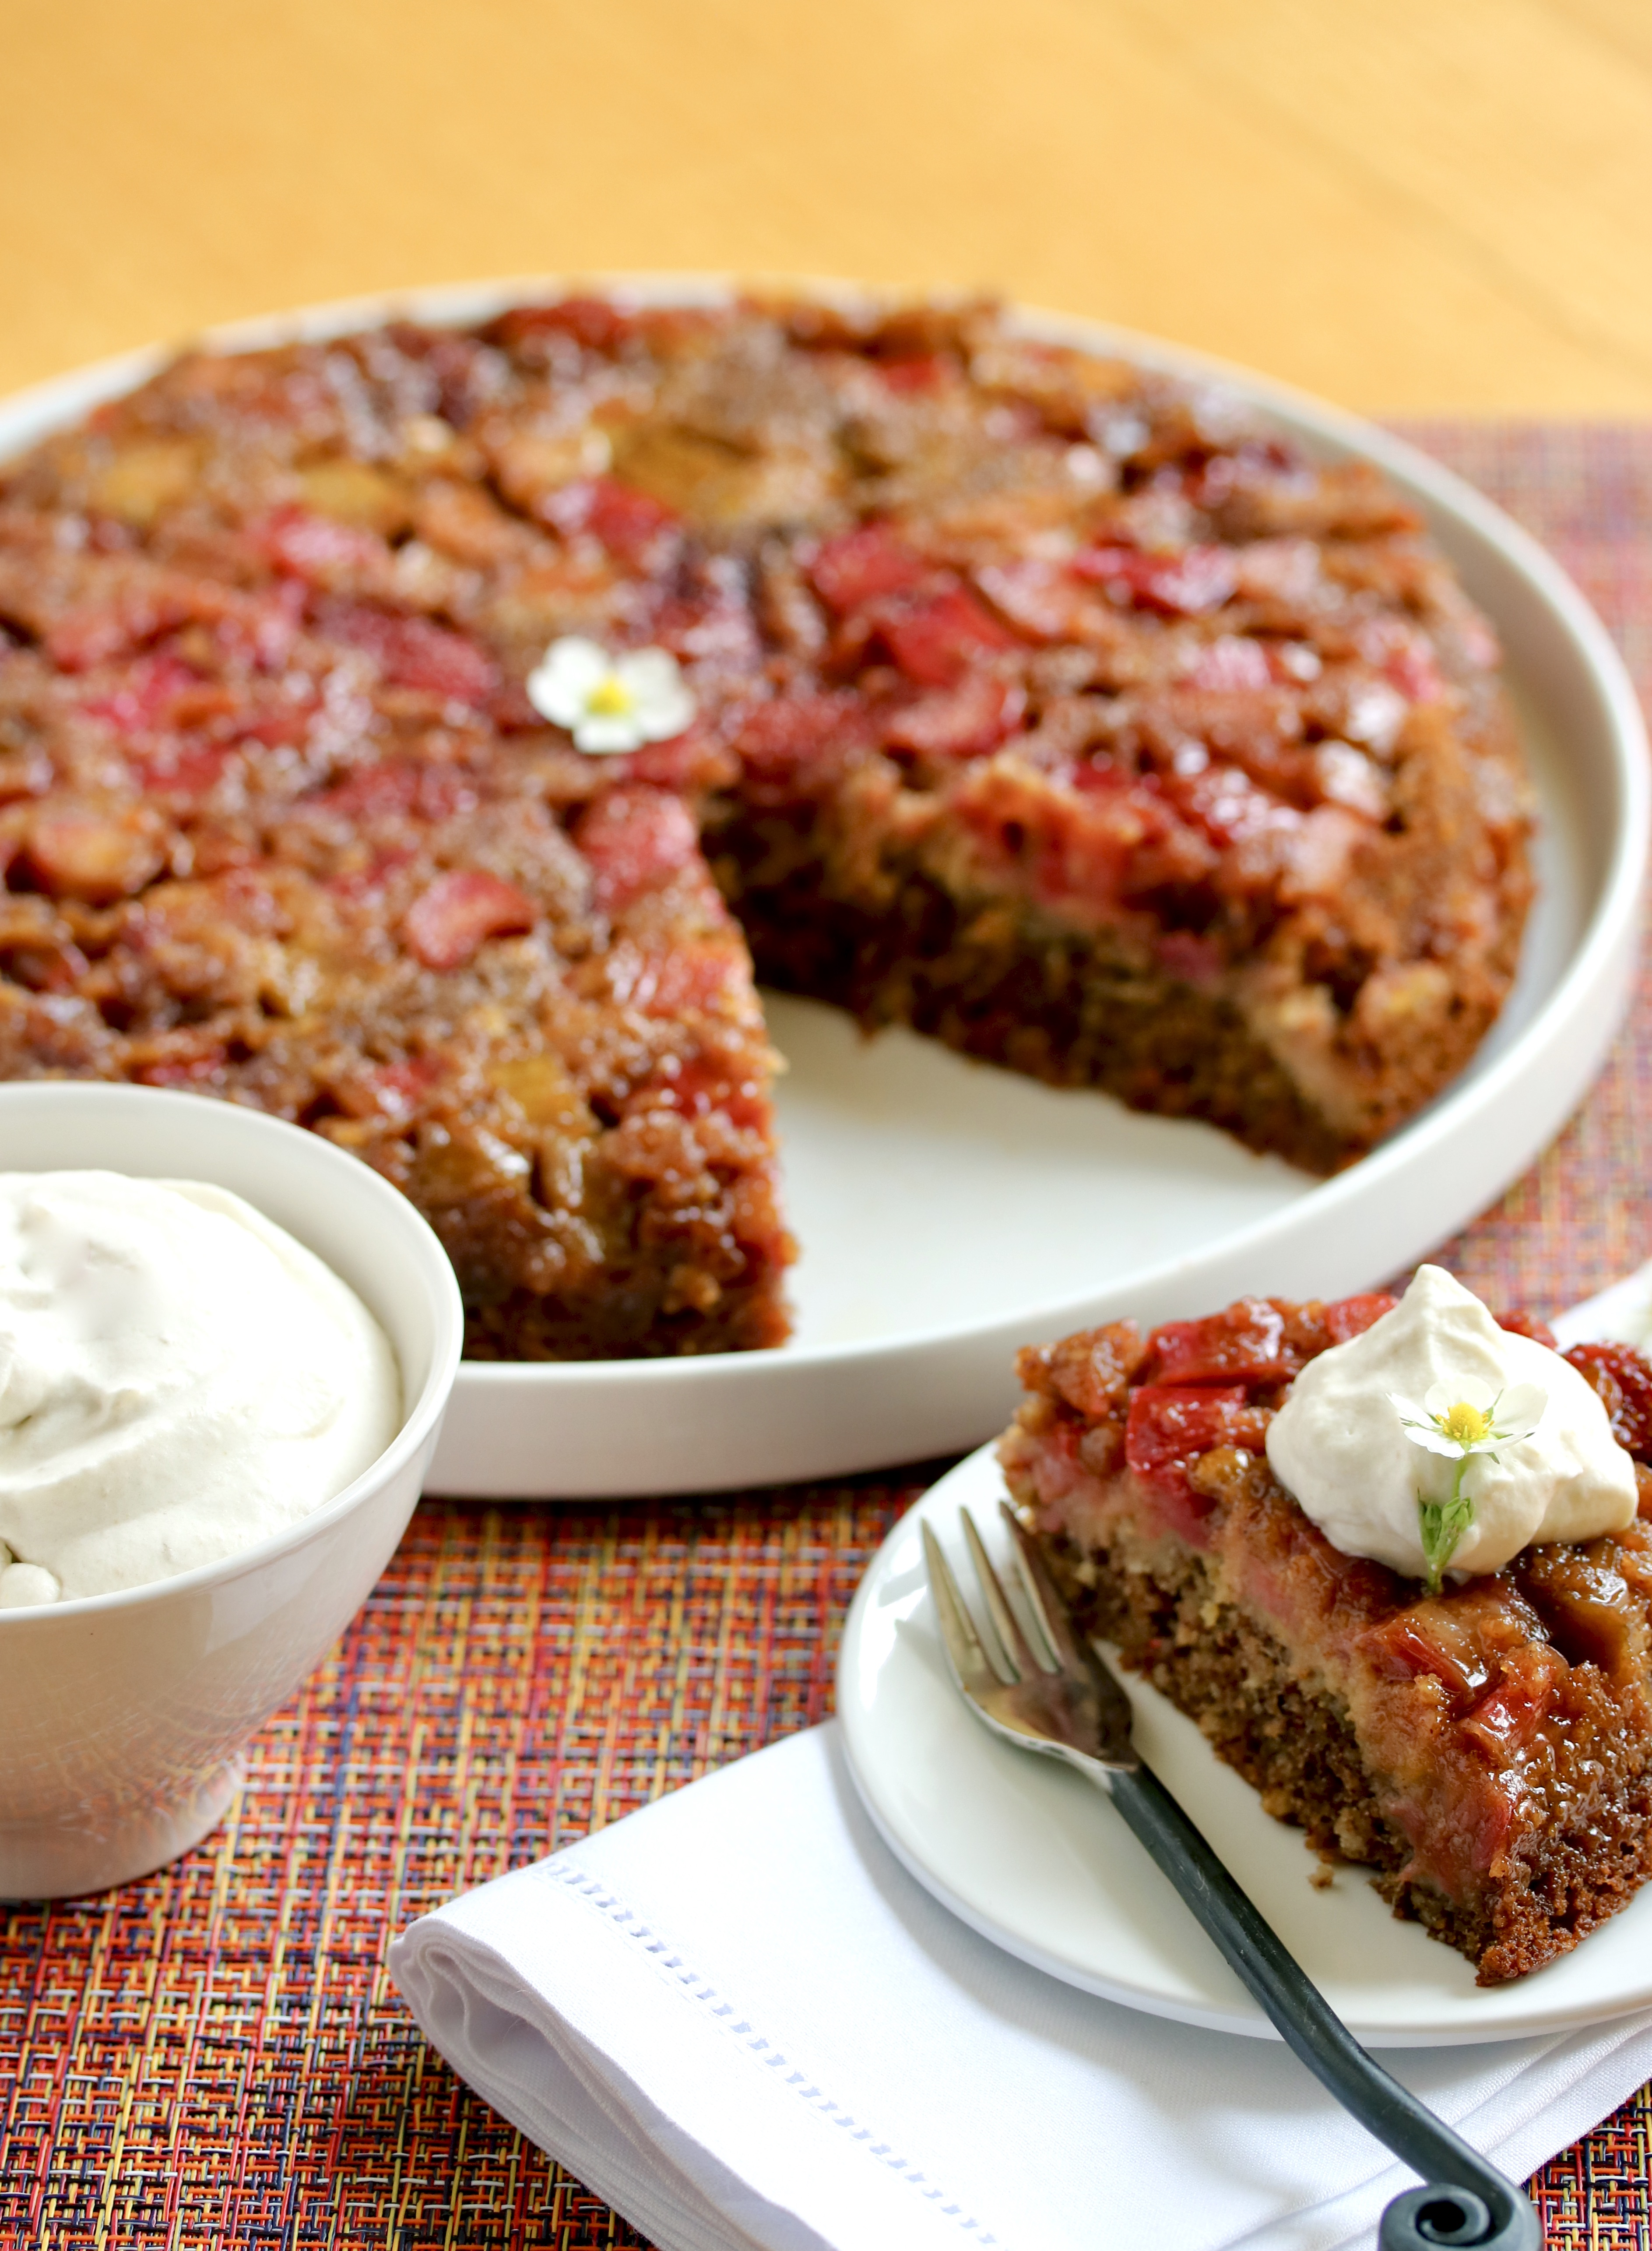 strawberry rhubarb skillet cake with slice cut out and bowl of whipped cream